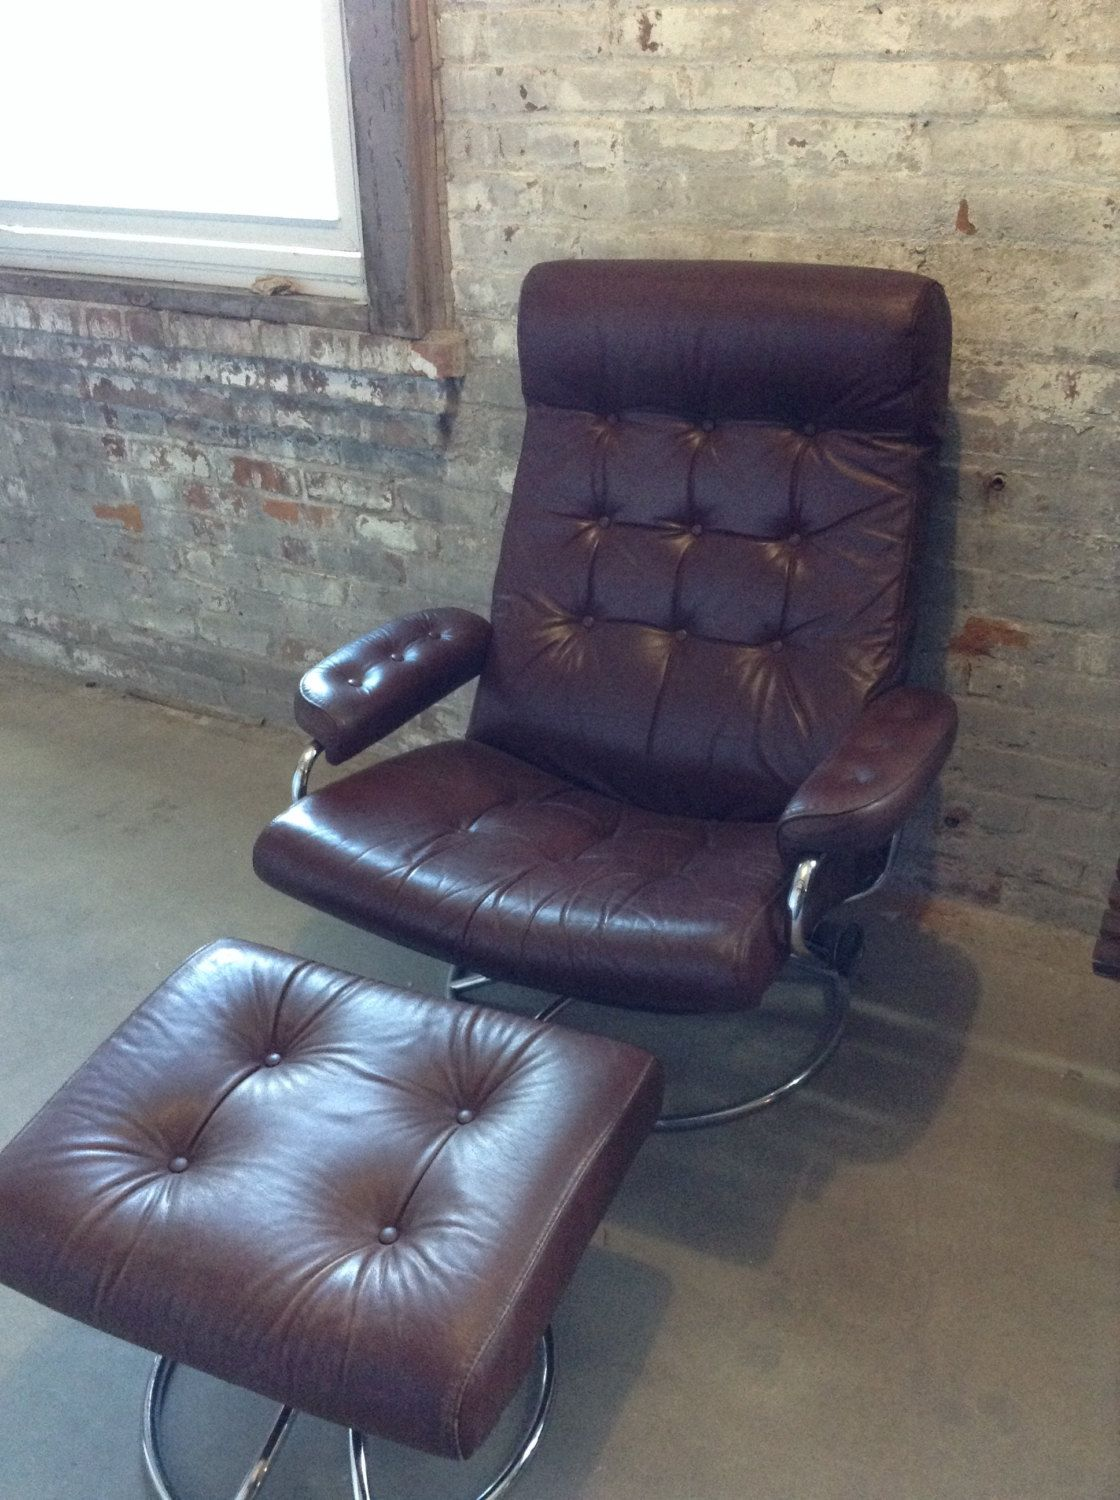 Mid Century Ekornes Brown Leather Recliner Chair - Danish Modern Chair -  EKORNES Stressless Swivel & Mid Century Ekornes Brown Leather Recliner Chair - Danish Modern ... islam-shia.org